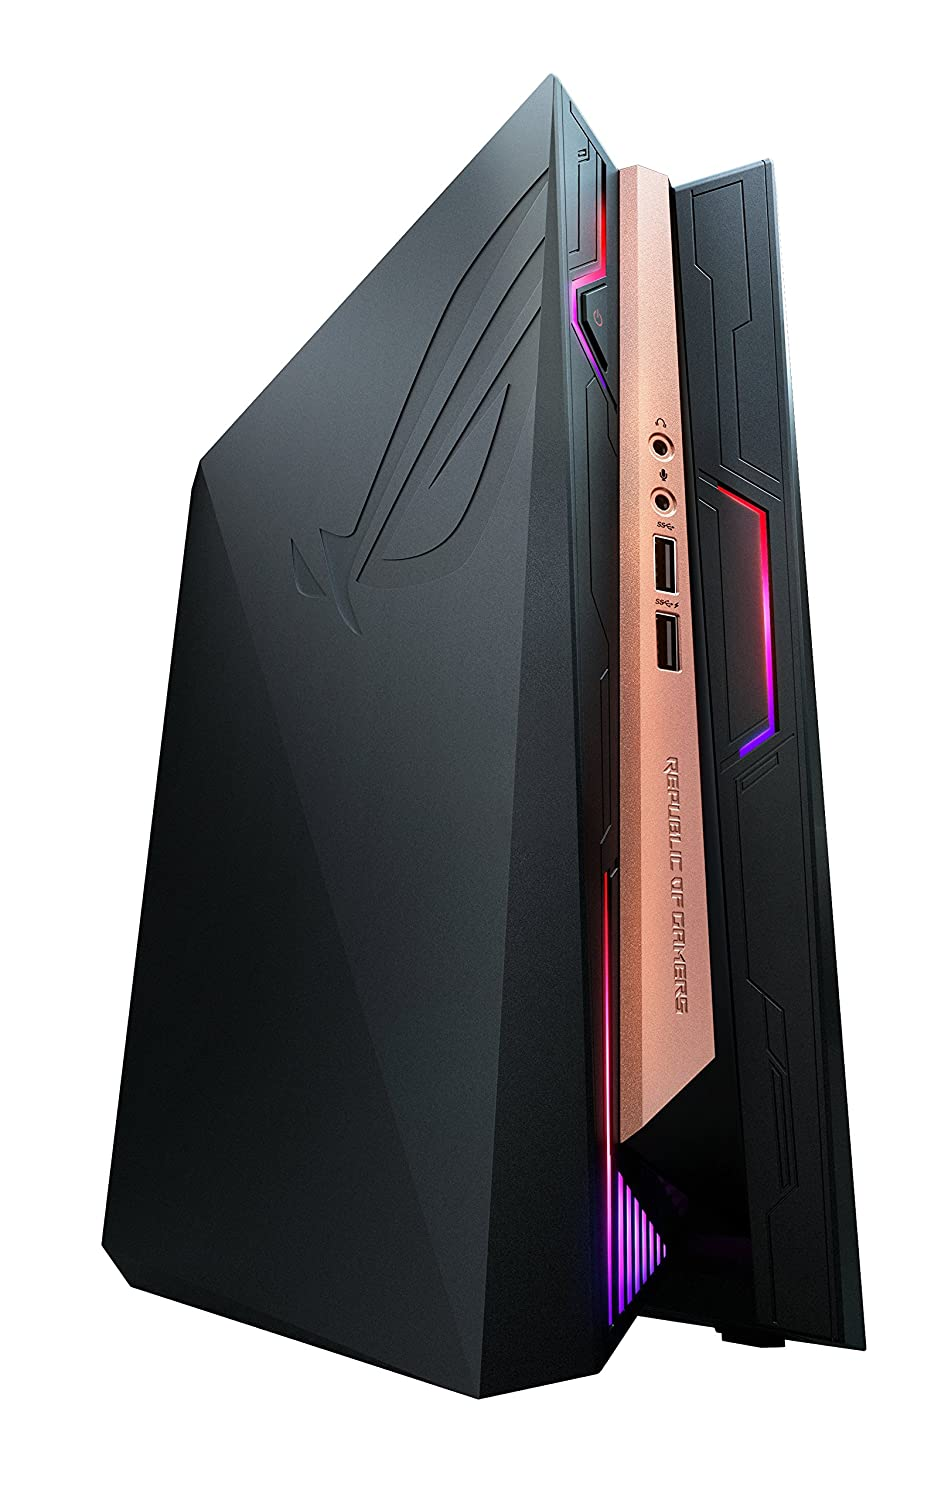 ASUS GR8 II-6GT025Z - Ordenador de sobremesa (Intel Core i7-7700, 16 GB RAM, 1 TB HDD, Nvidia GeForce GTX1060, Windows 10 Original), Negro y Rojo